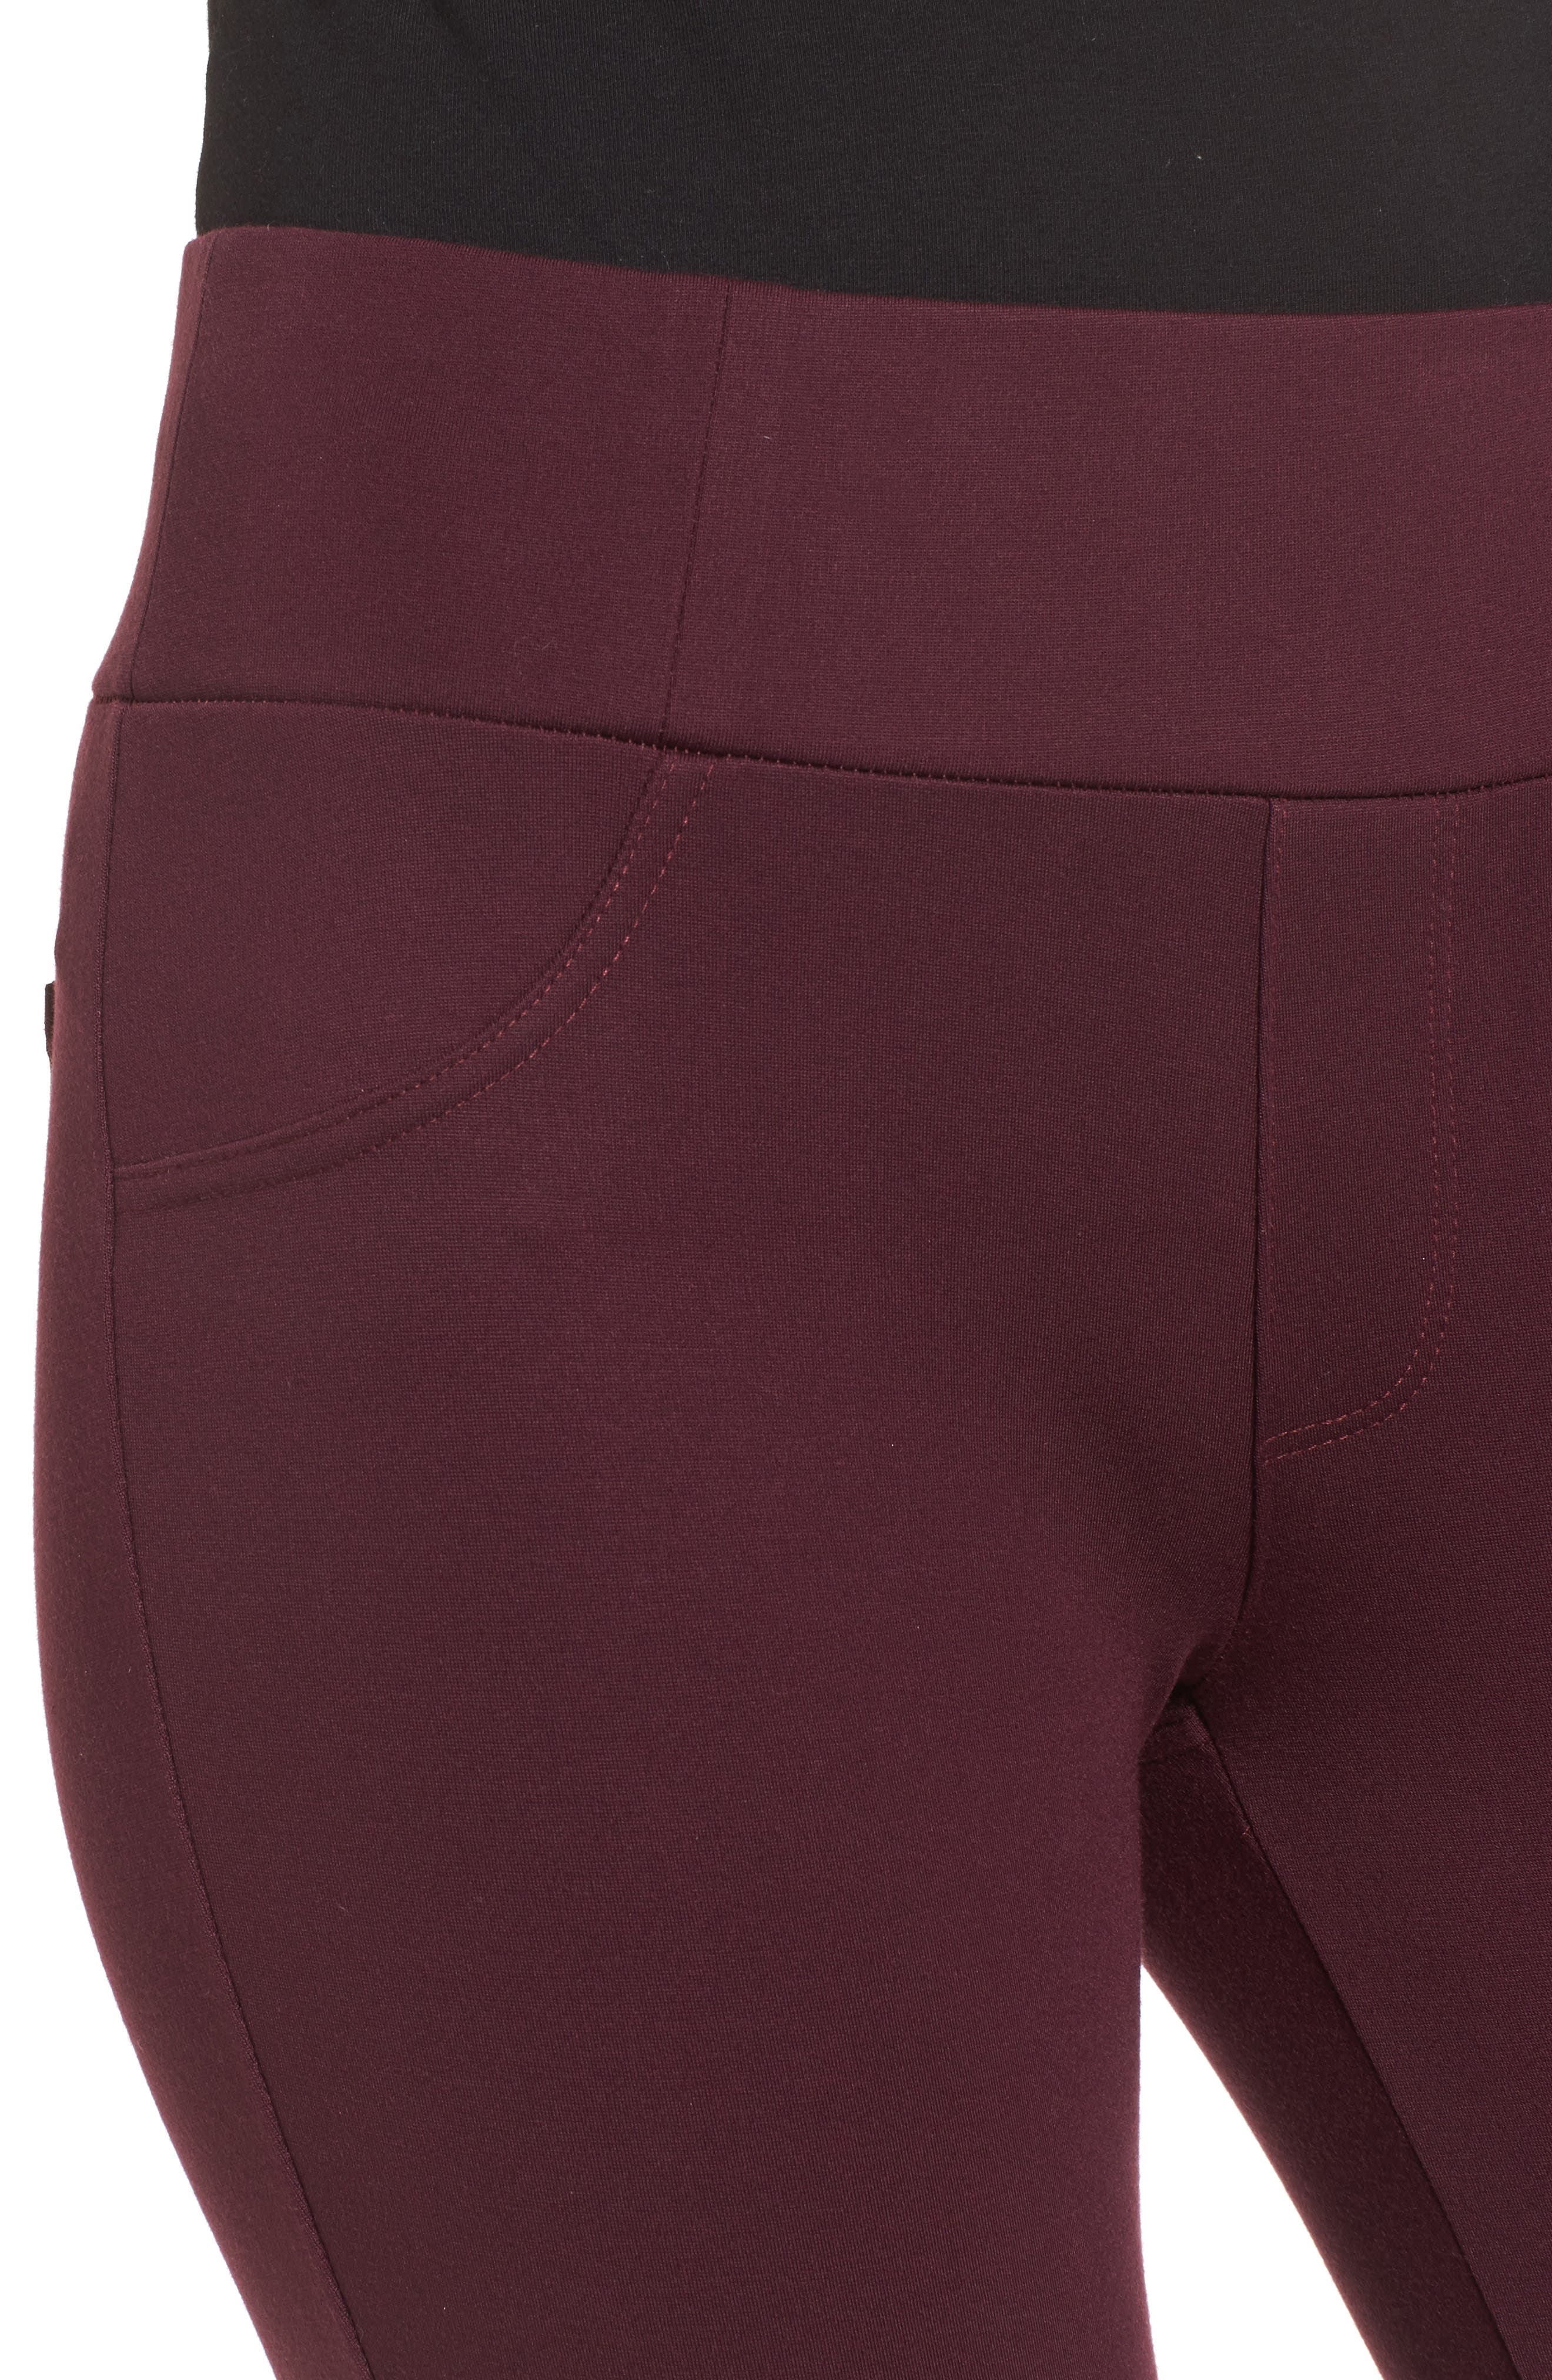 High Waist Ponte Pants,                             Alternate thumbnail 4, color,                             Wine